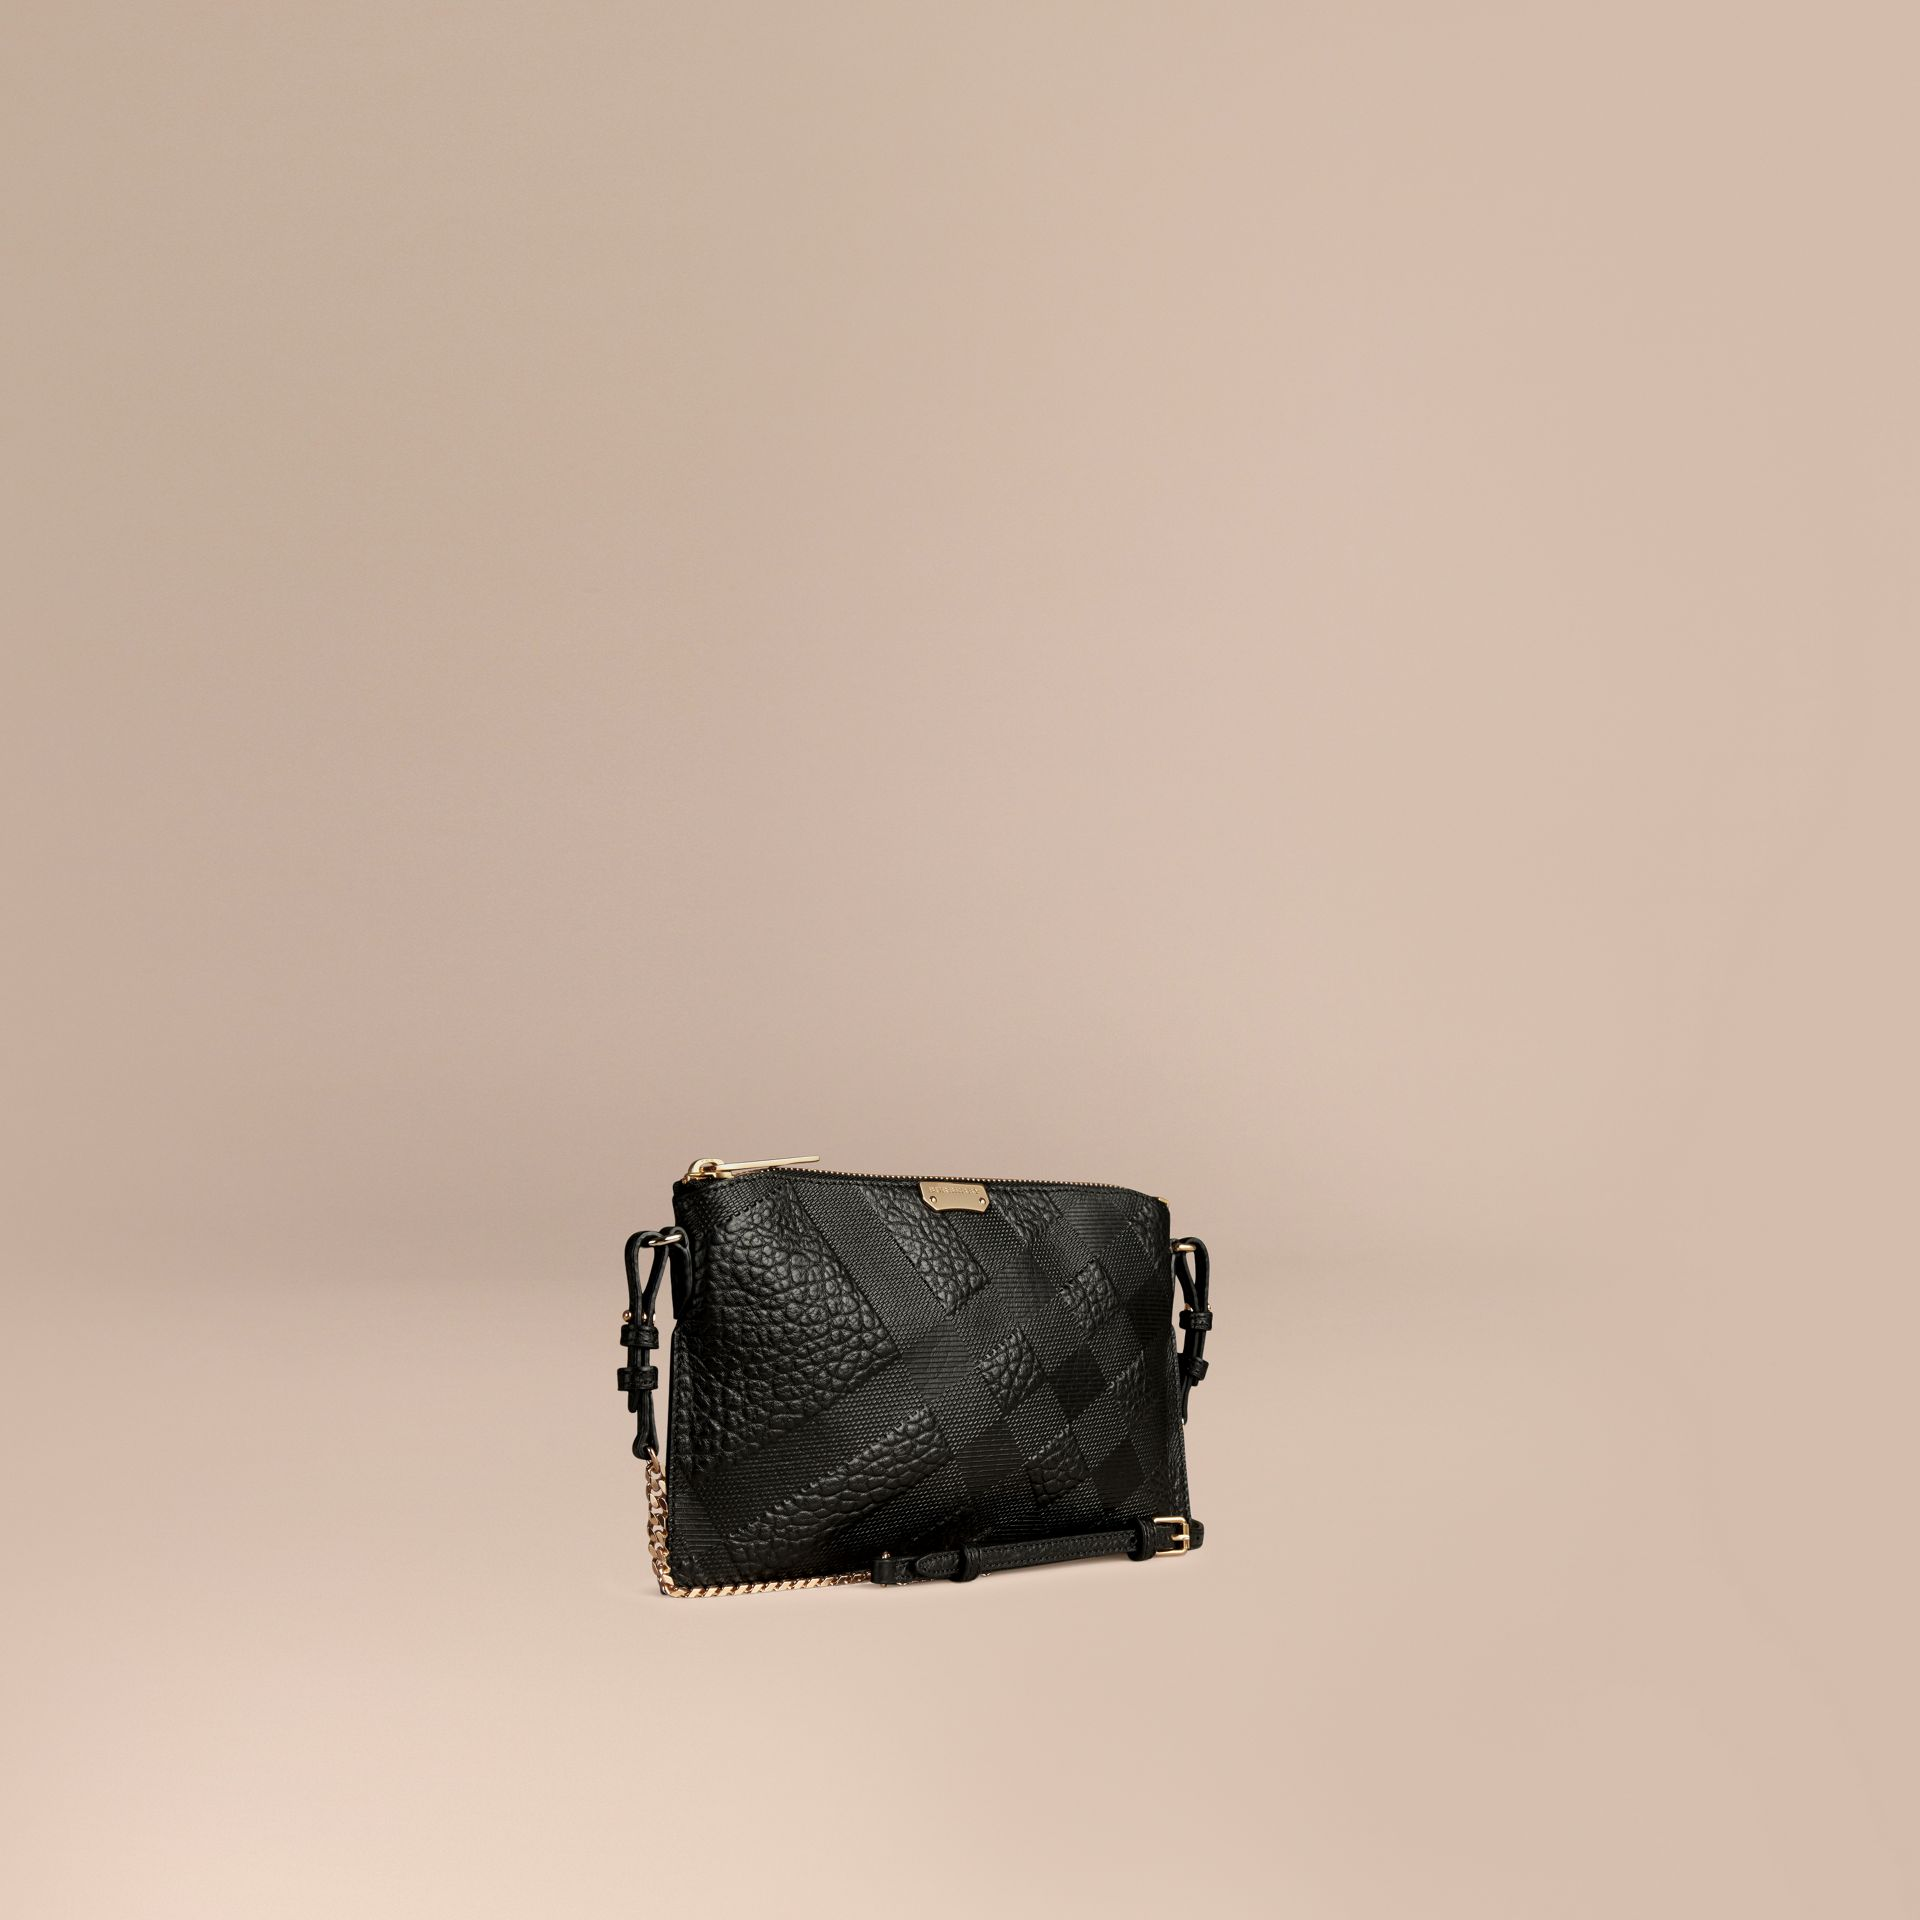 Black Check-embossed Leather Clutch Bag Black - gallery image 1